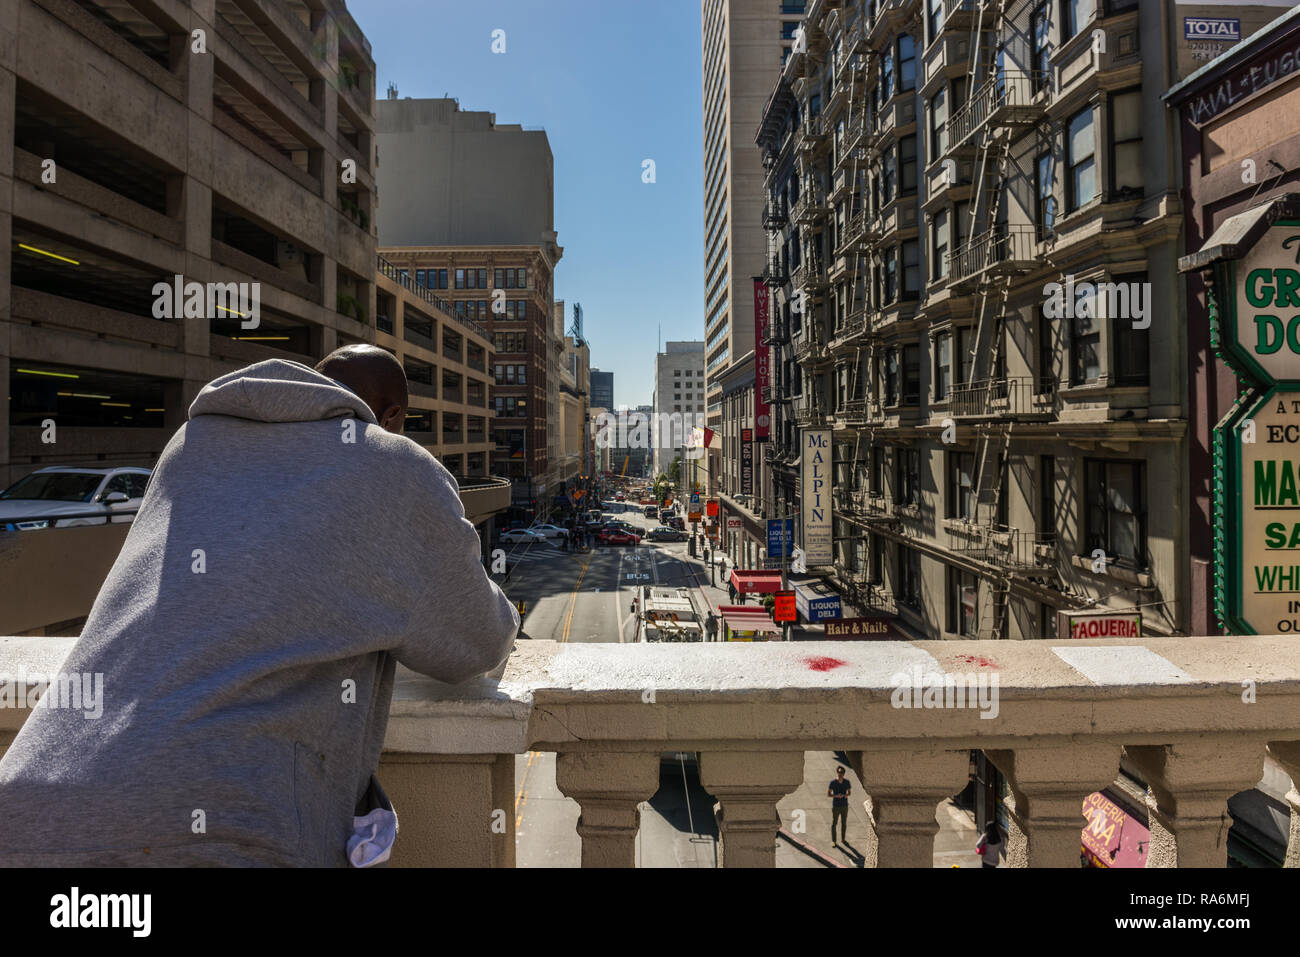 An african-american man with a white sweatshirt rests on a handrail at bush street in San Francisco, California, USA - Stock Image